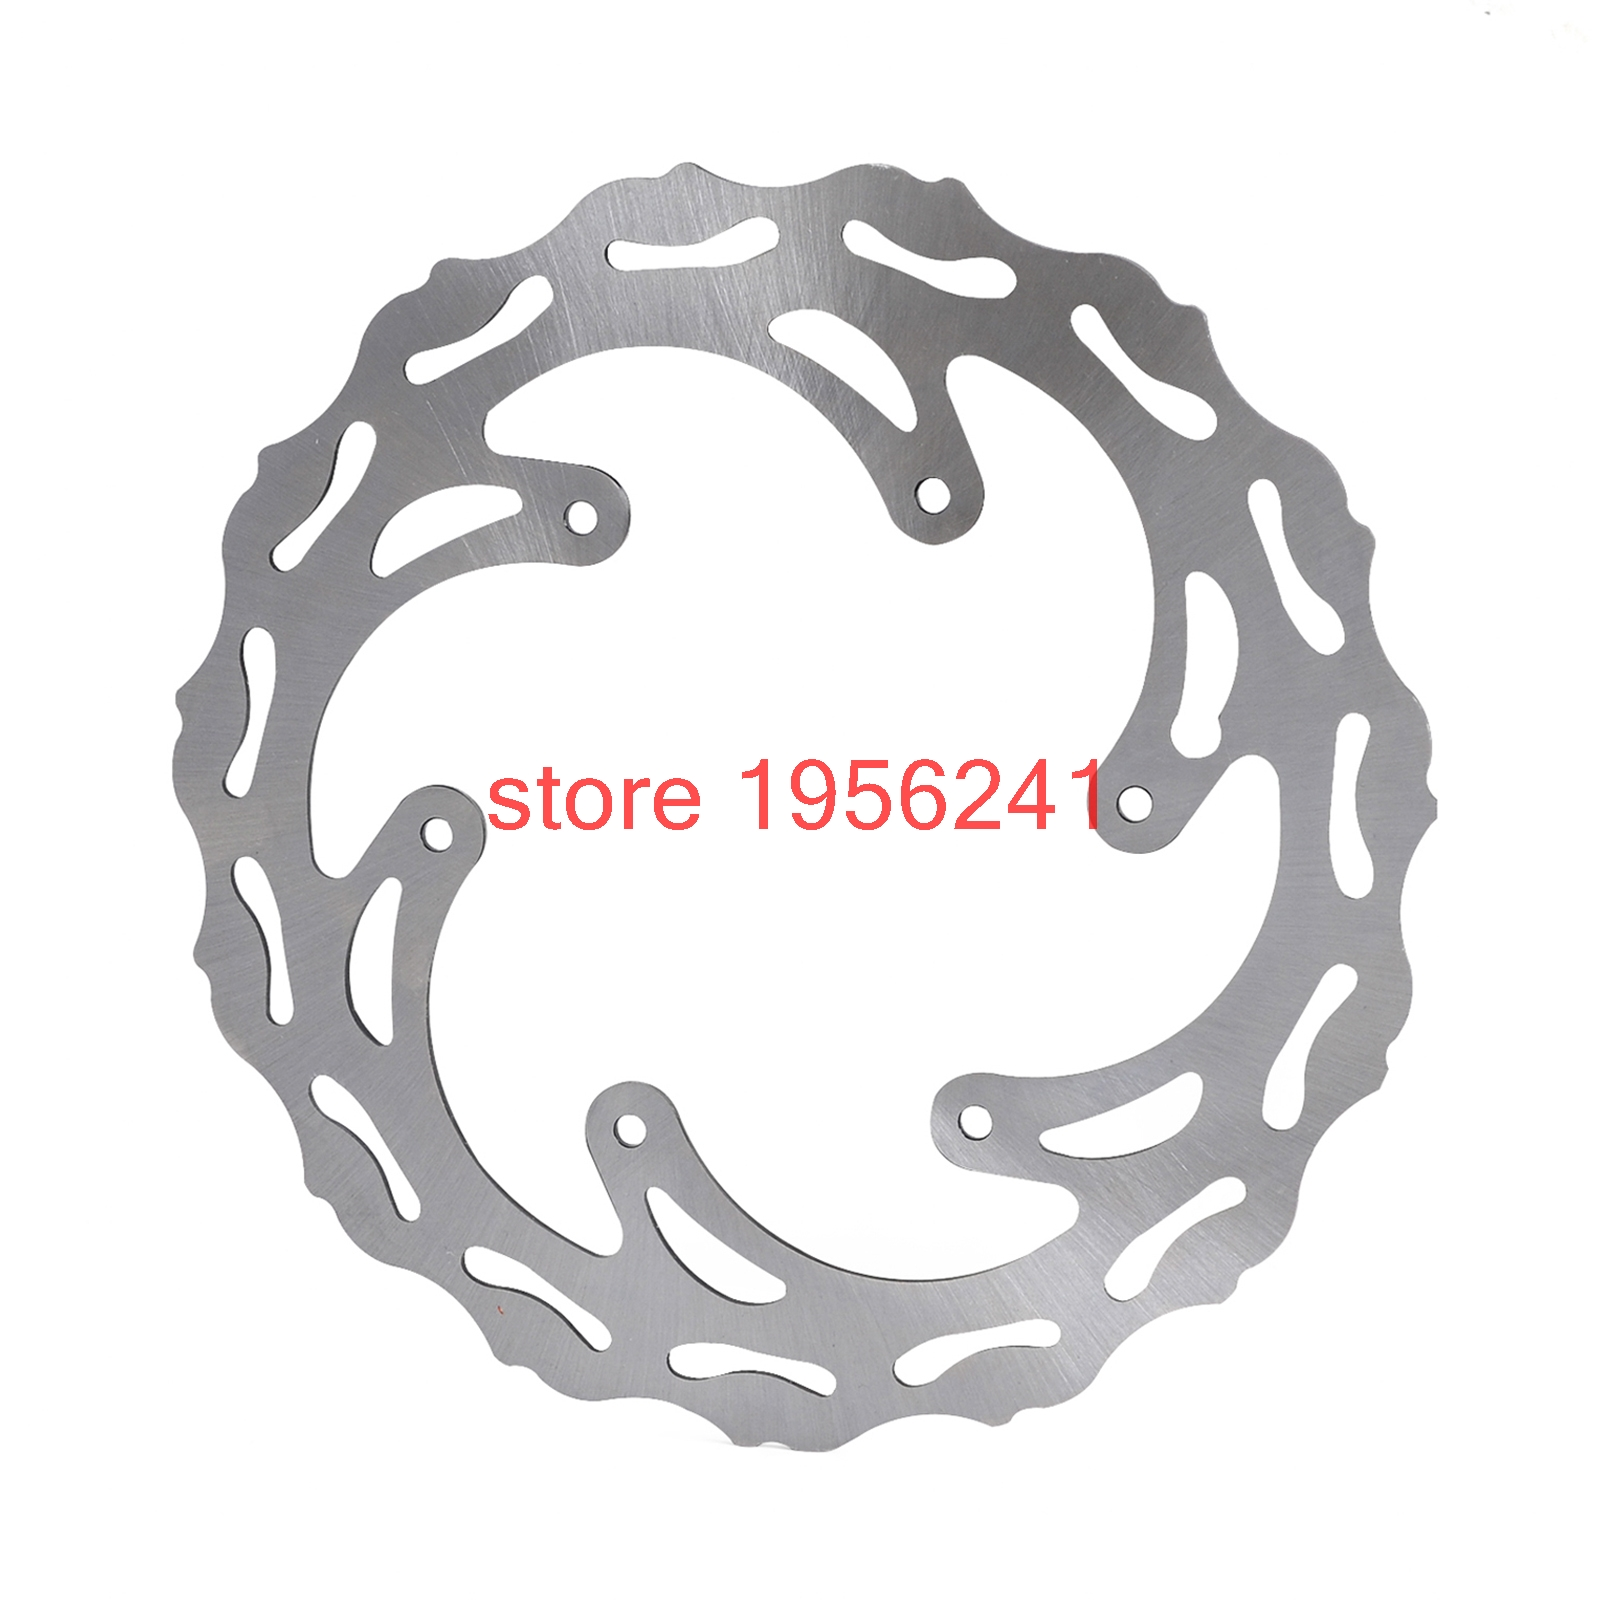 Motorcycle Front Brake Disc For KTM 125 200 250 300 400 450 500 525 530 XC SX SXF SX-F EXC EXCF EXCR EXC-F EXC-R NEW motorcycle front and rear brake pads for ktm exc r450 2008 sx f 450 usd 2003 2008 xc f xcr w 450 2008 black brake disc pad